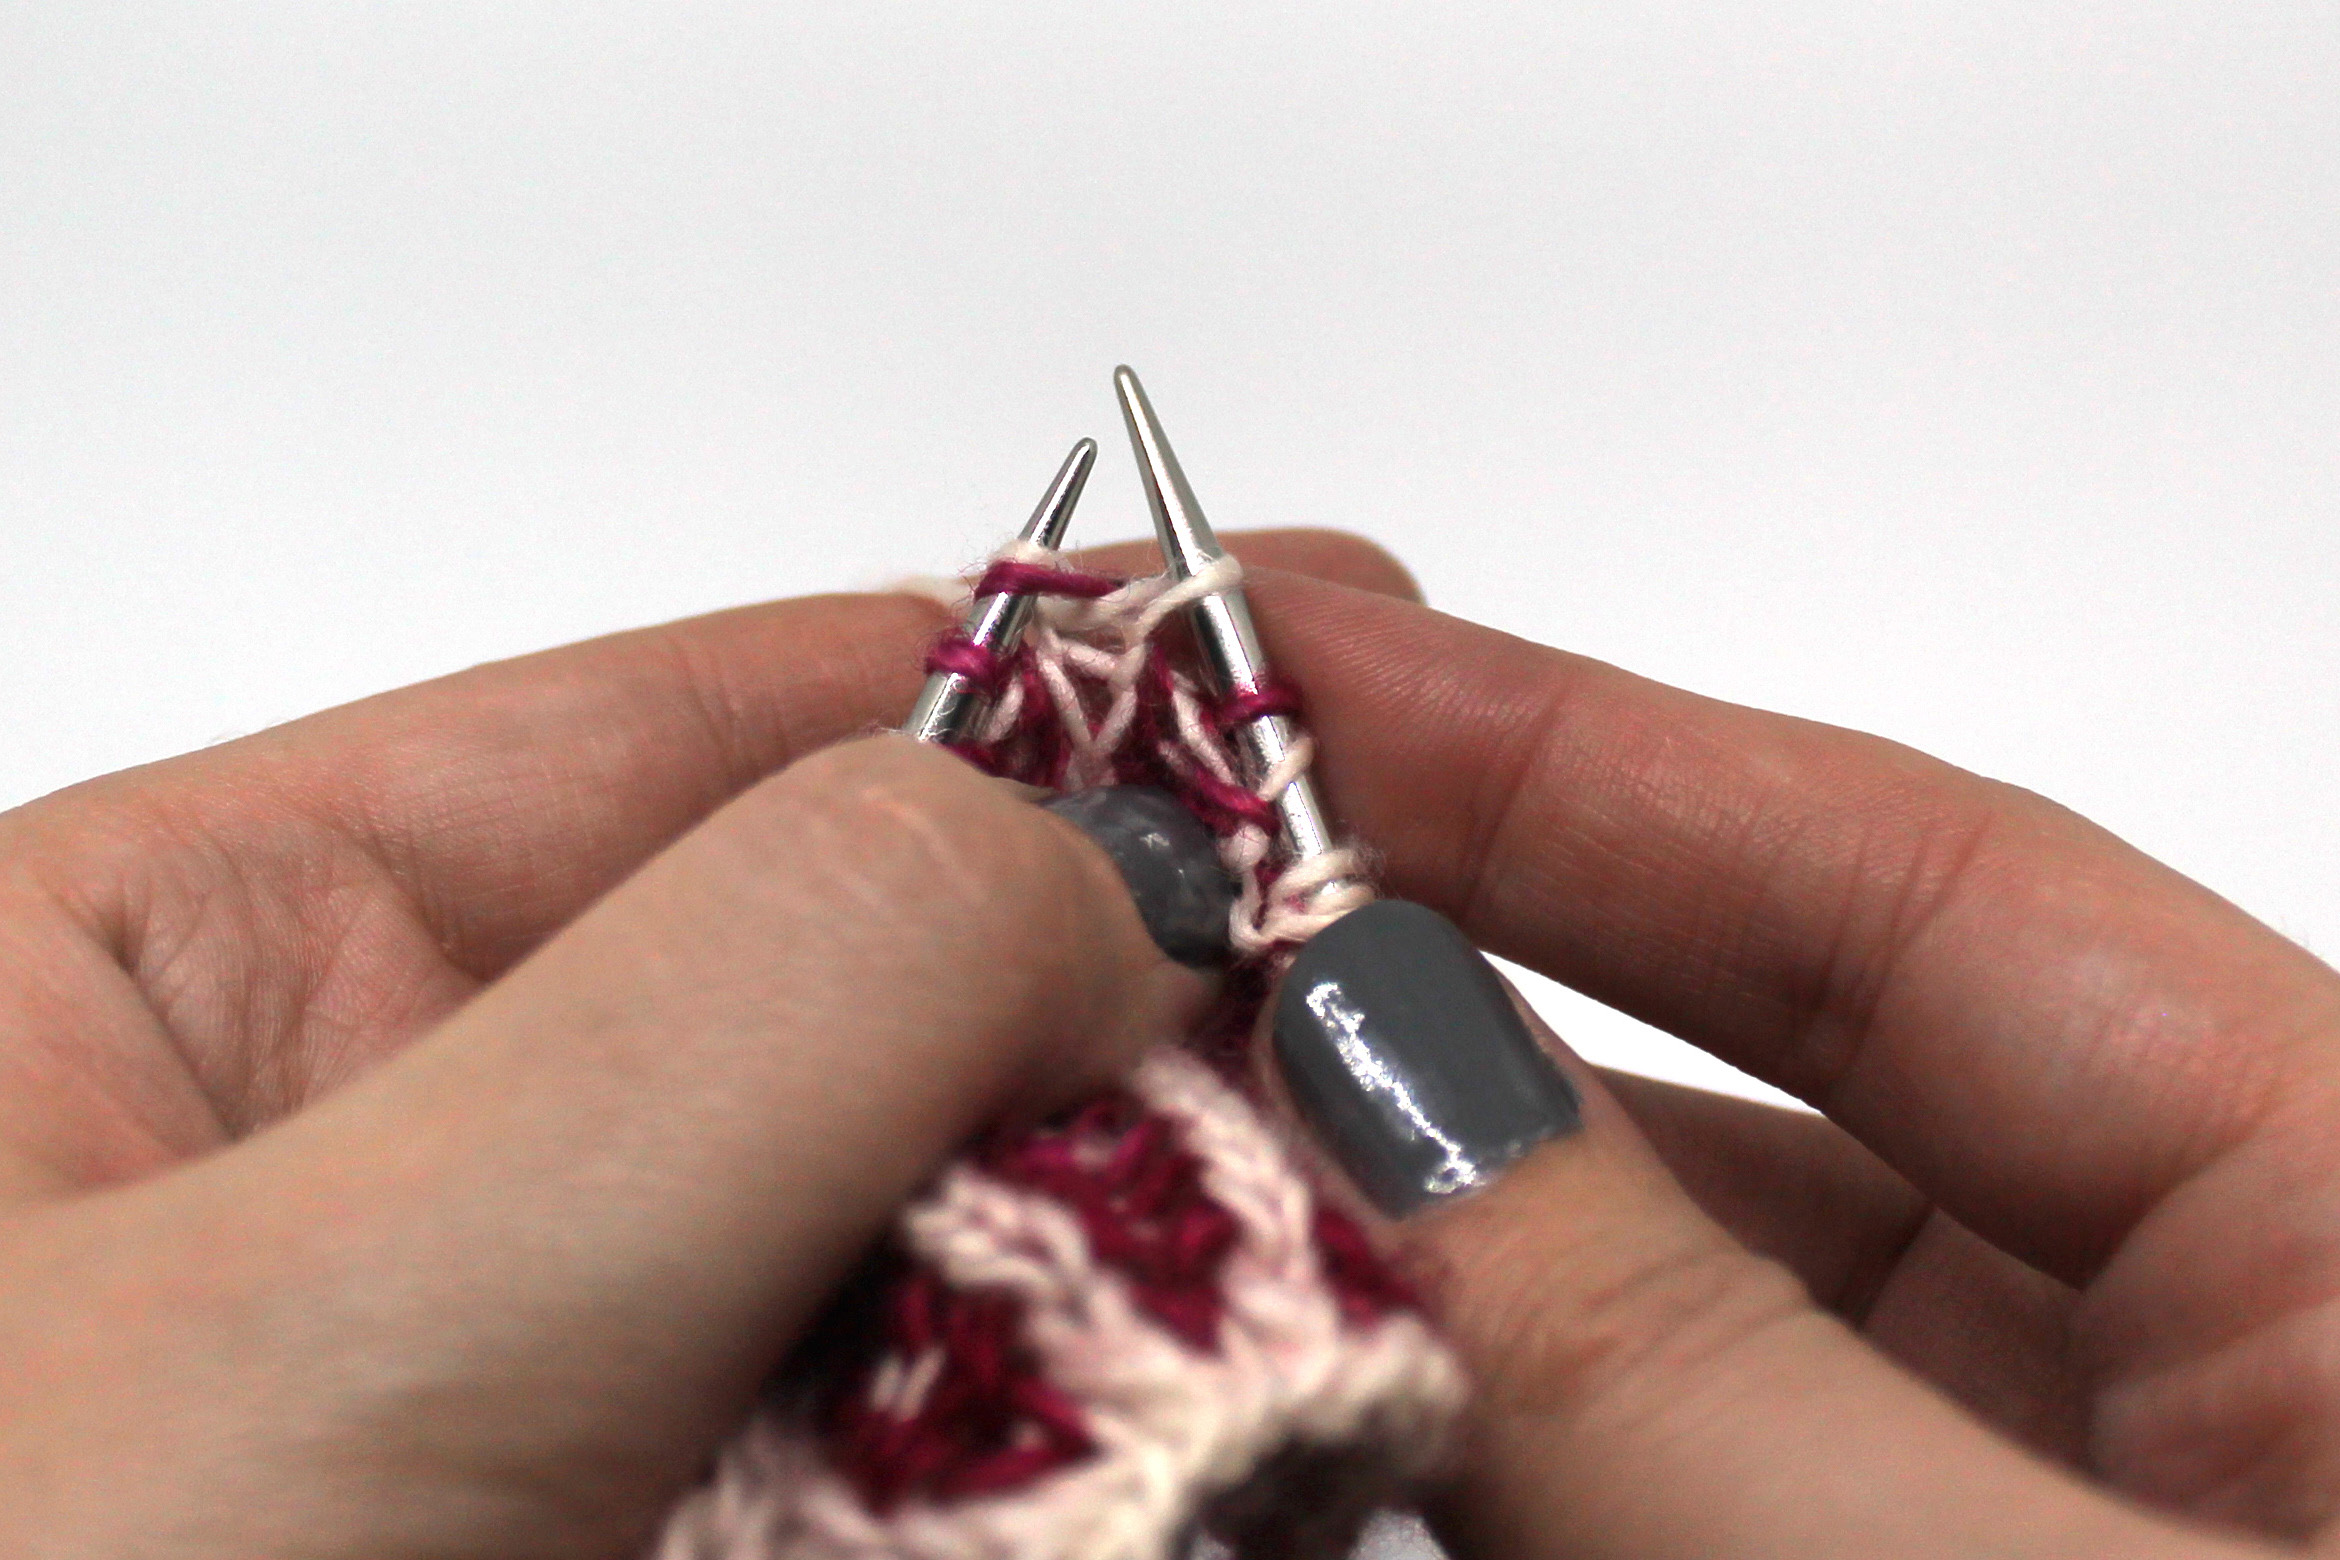 A stitch on the left hand needle with a knit stitch through it on the right hand needle